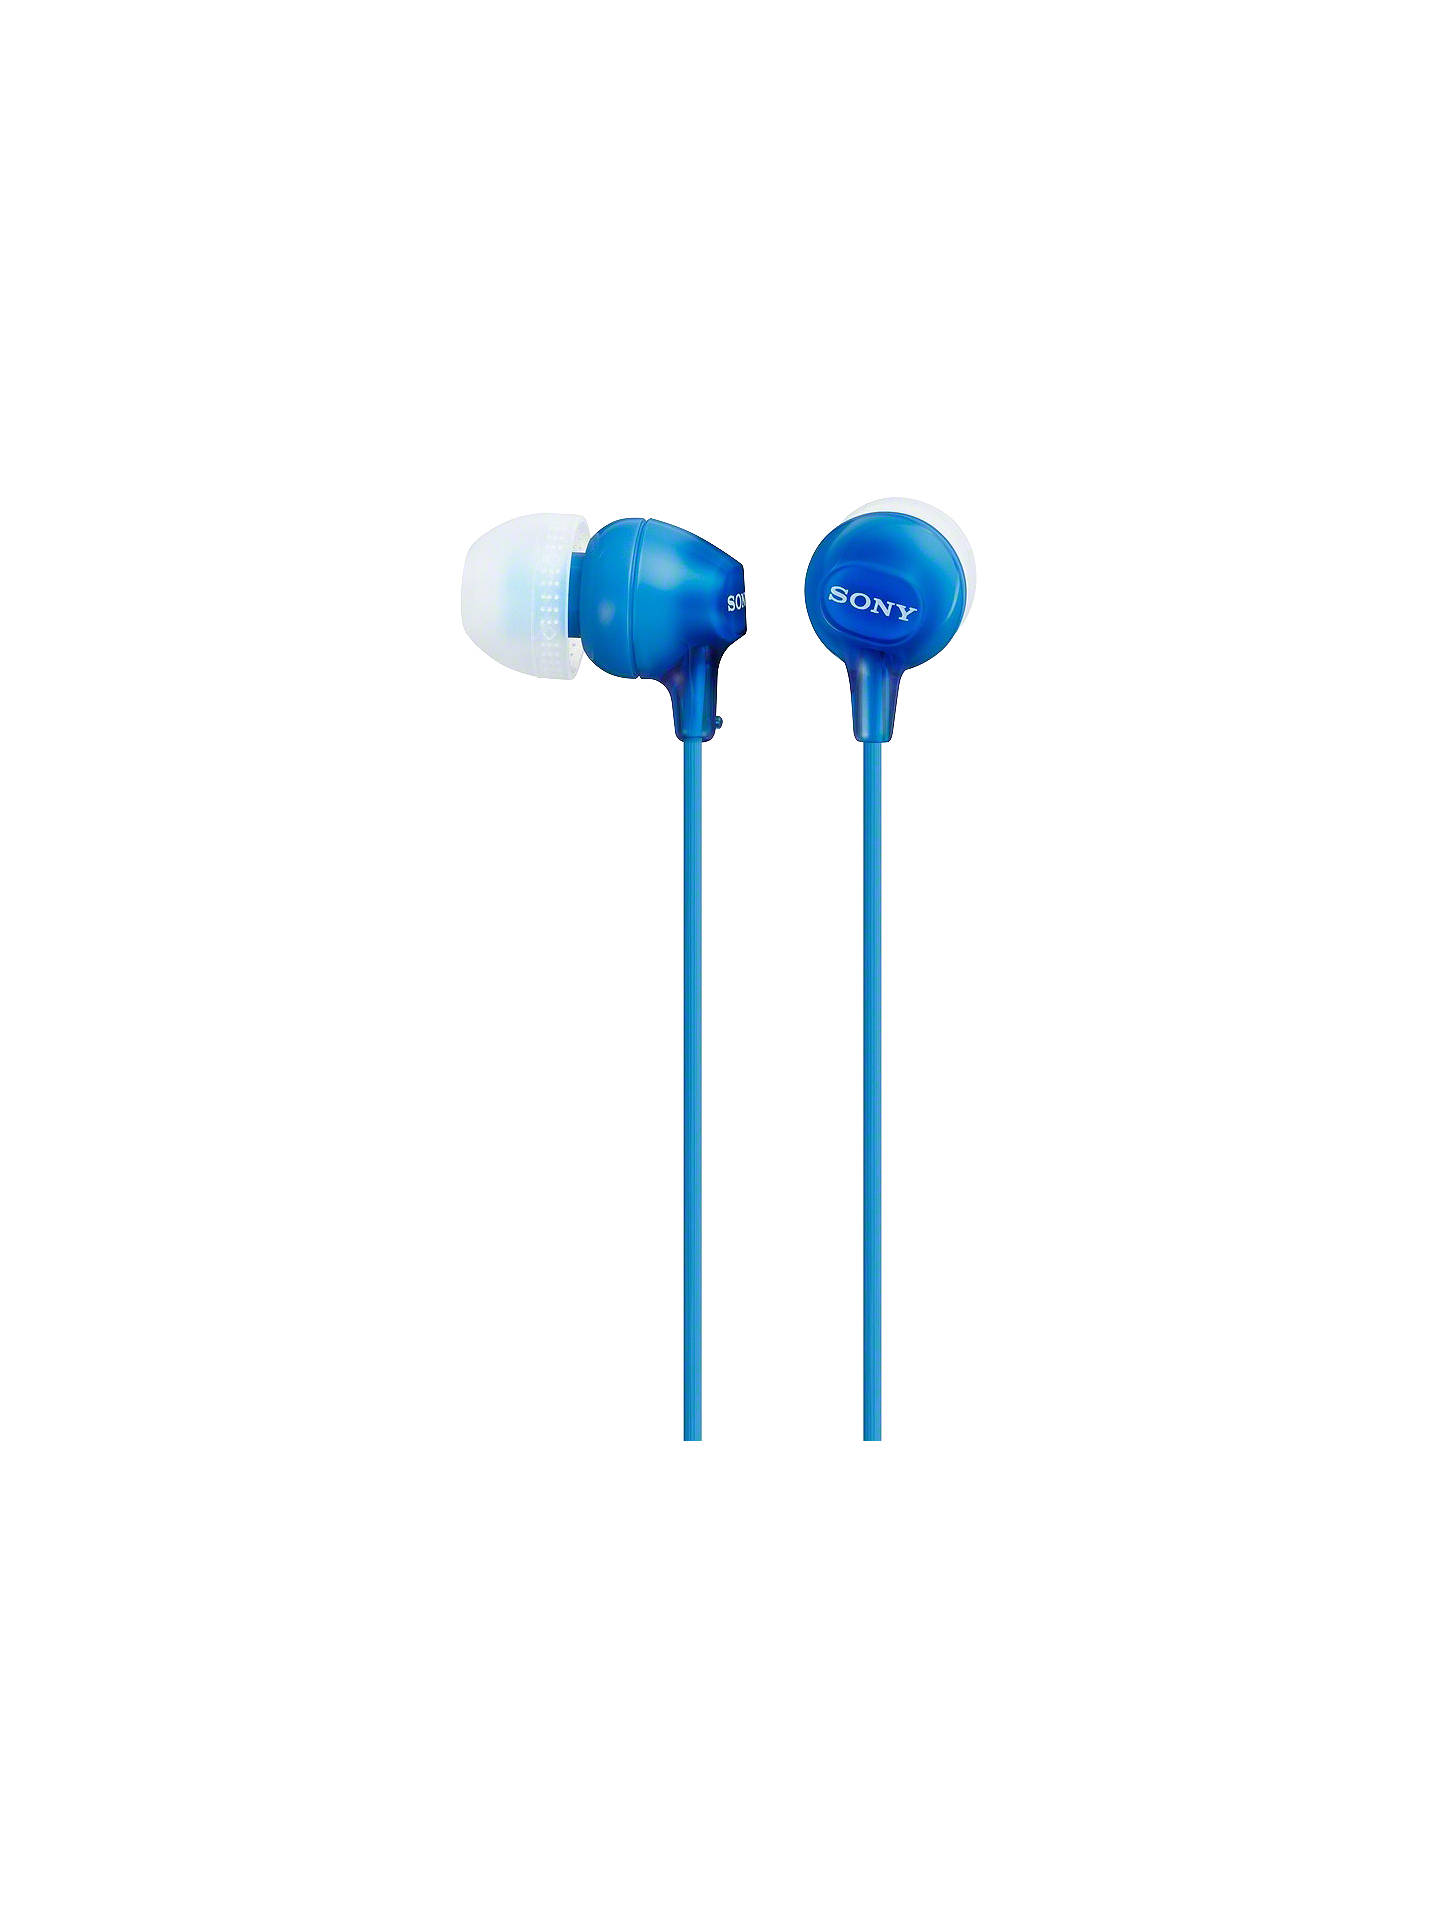 BuySony MDR-EX15AP In-Ear Headphones with Mic/Remote, Blue Online at johnlewis.com